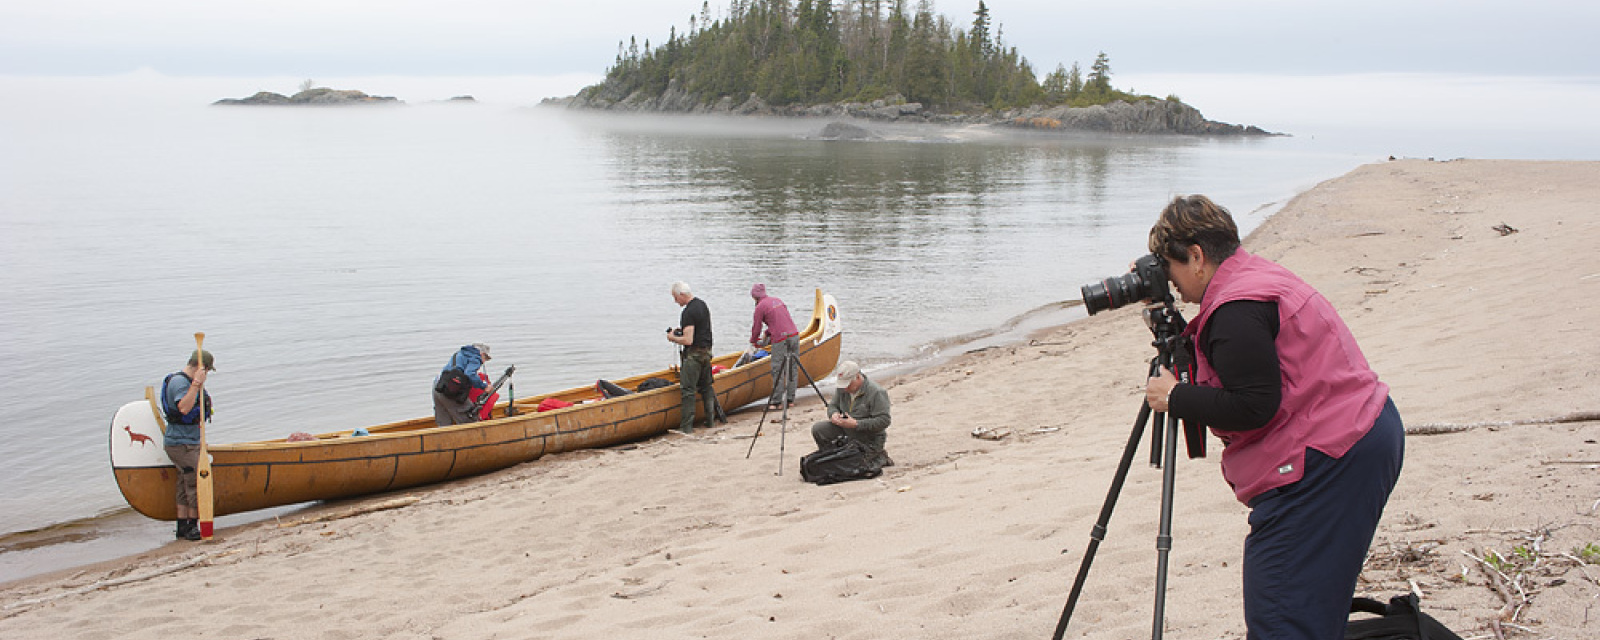 Superior Woods and Waters Photography Workshop with James Smedley